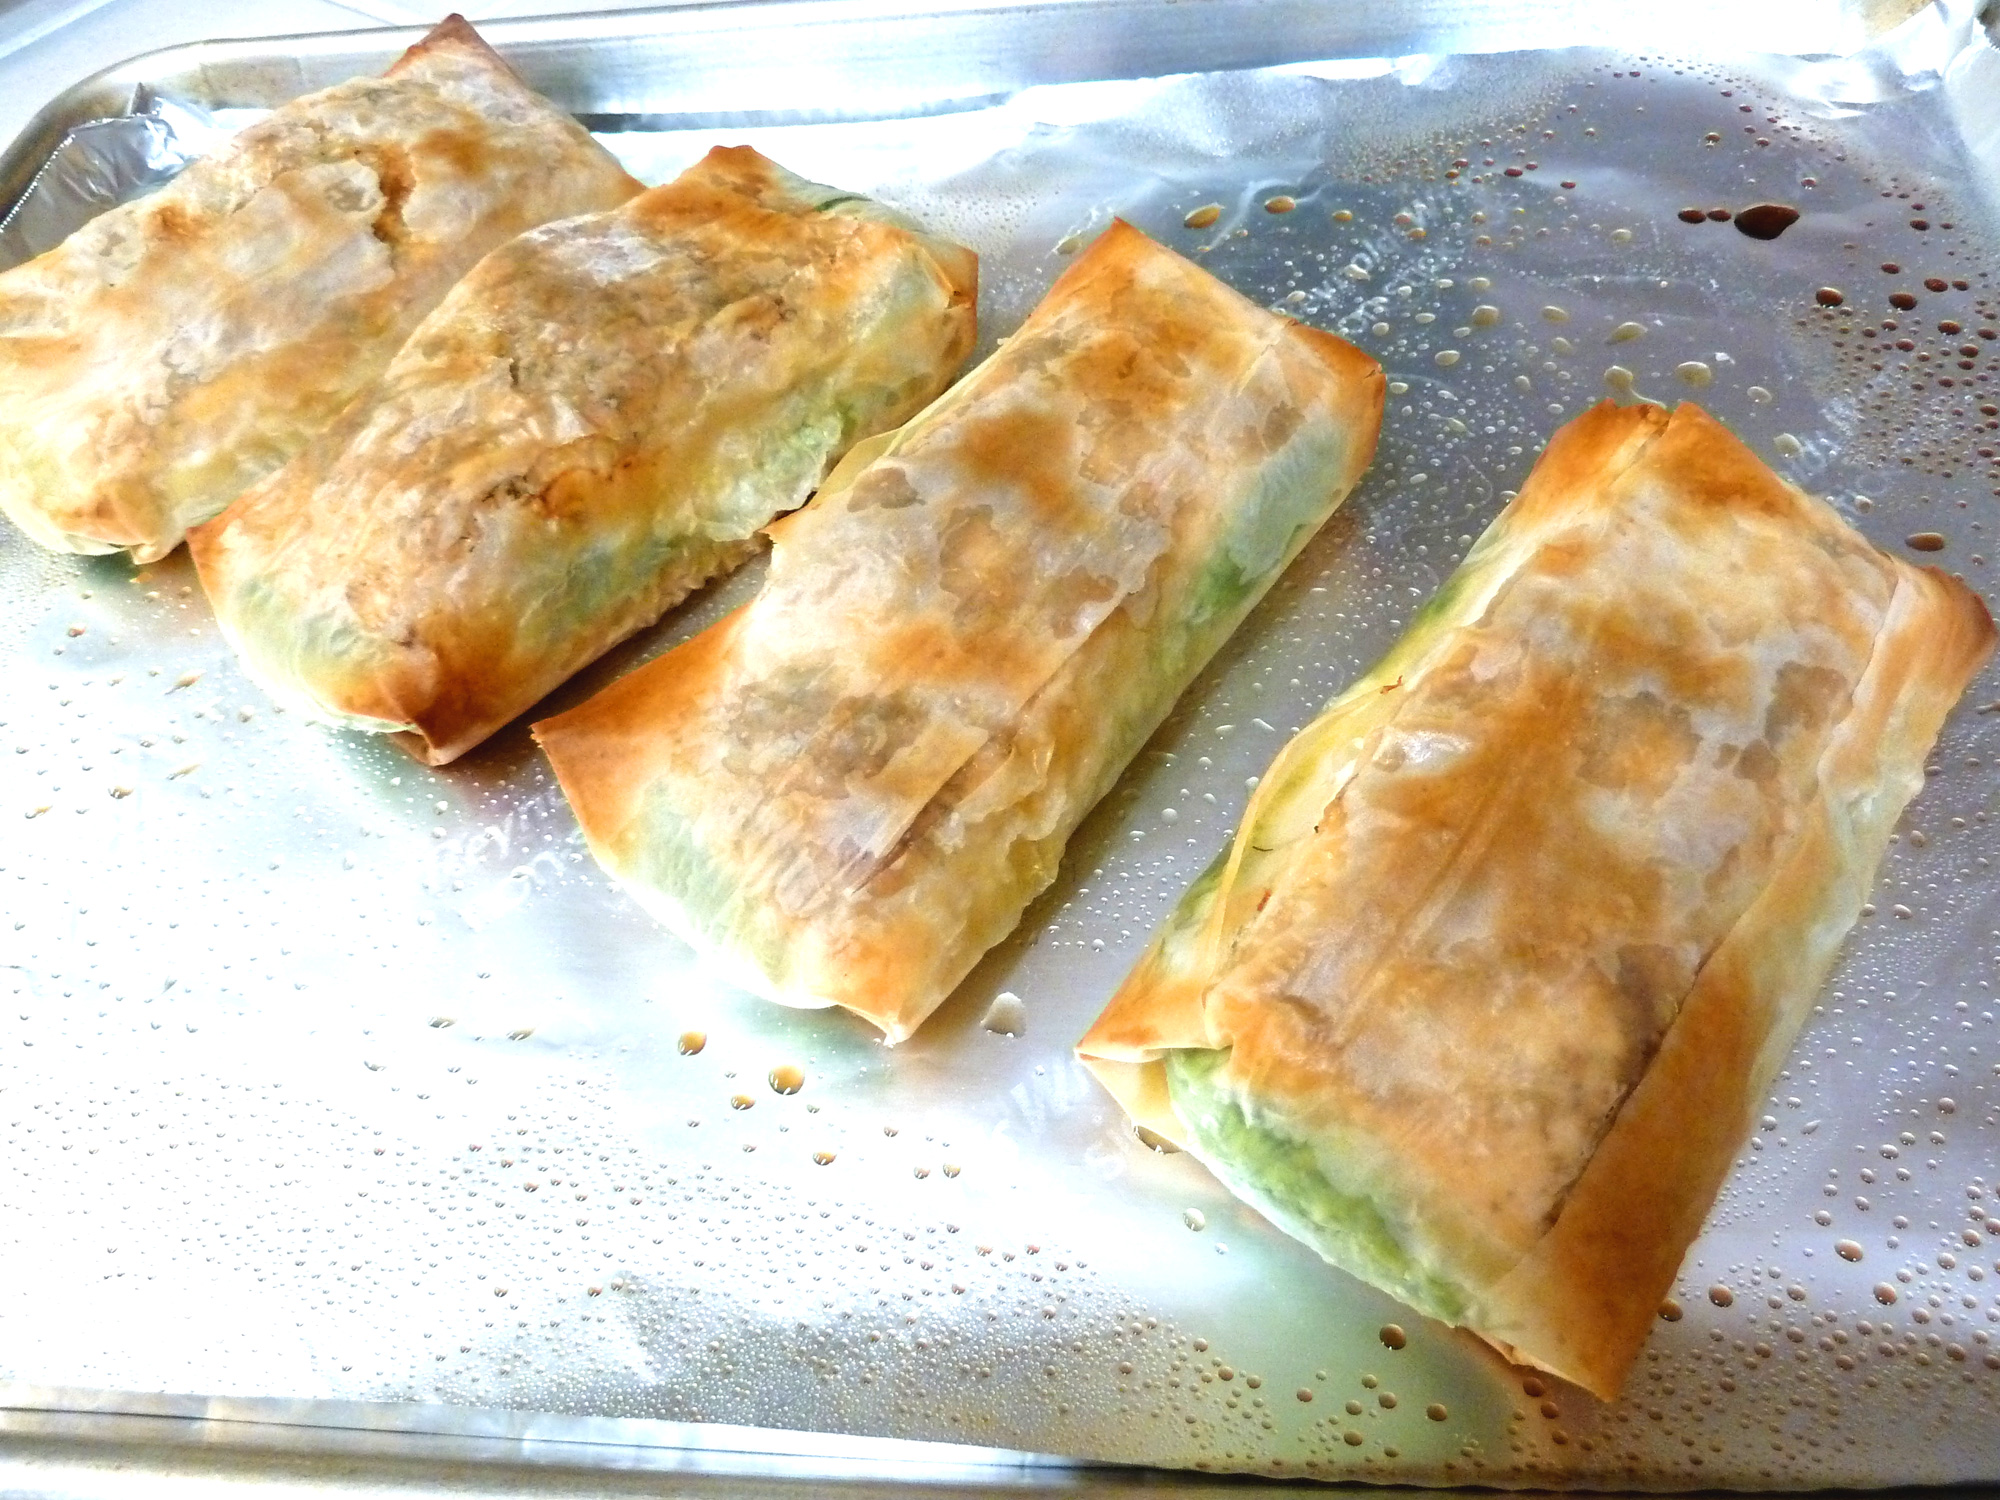 Salmon in phyllo, golden brown and fresh from the oven.